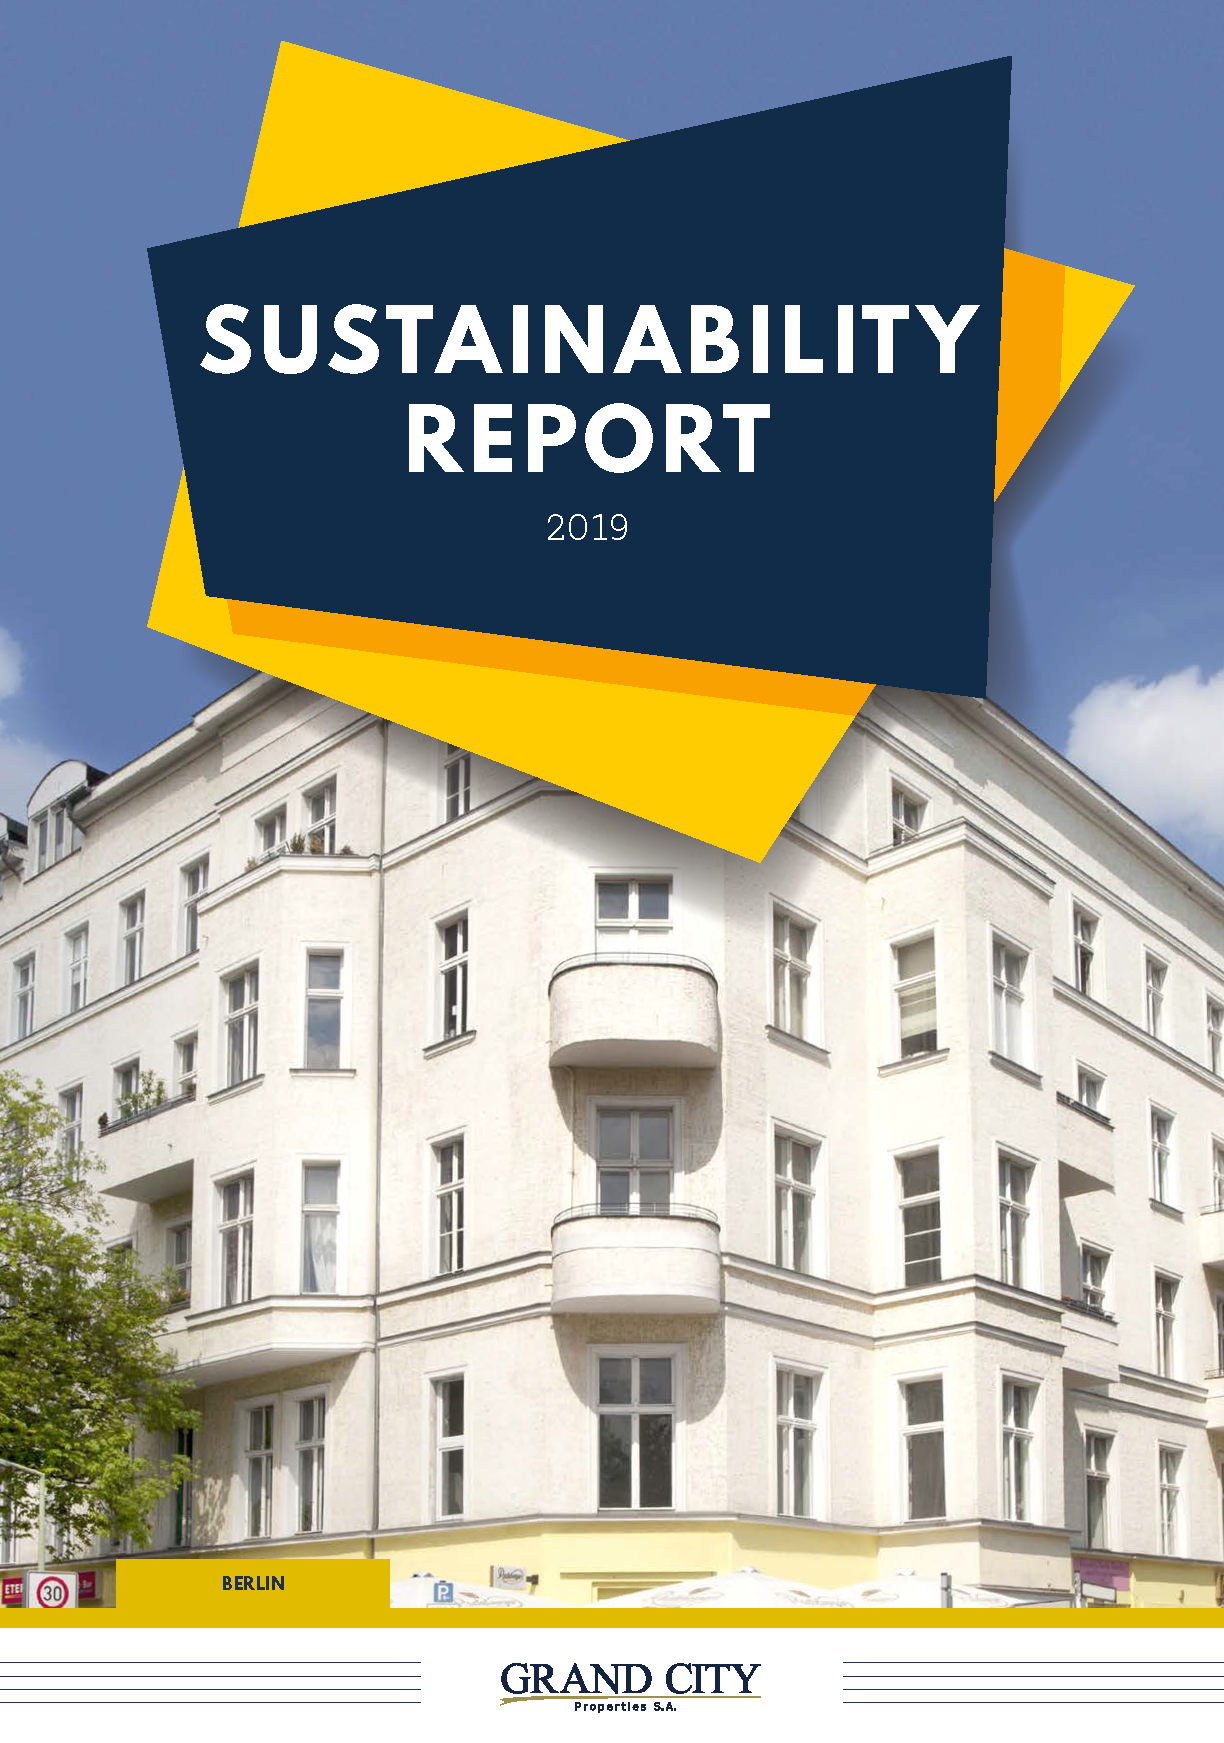 Grand City Properties Sustainability Report 2019